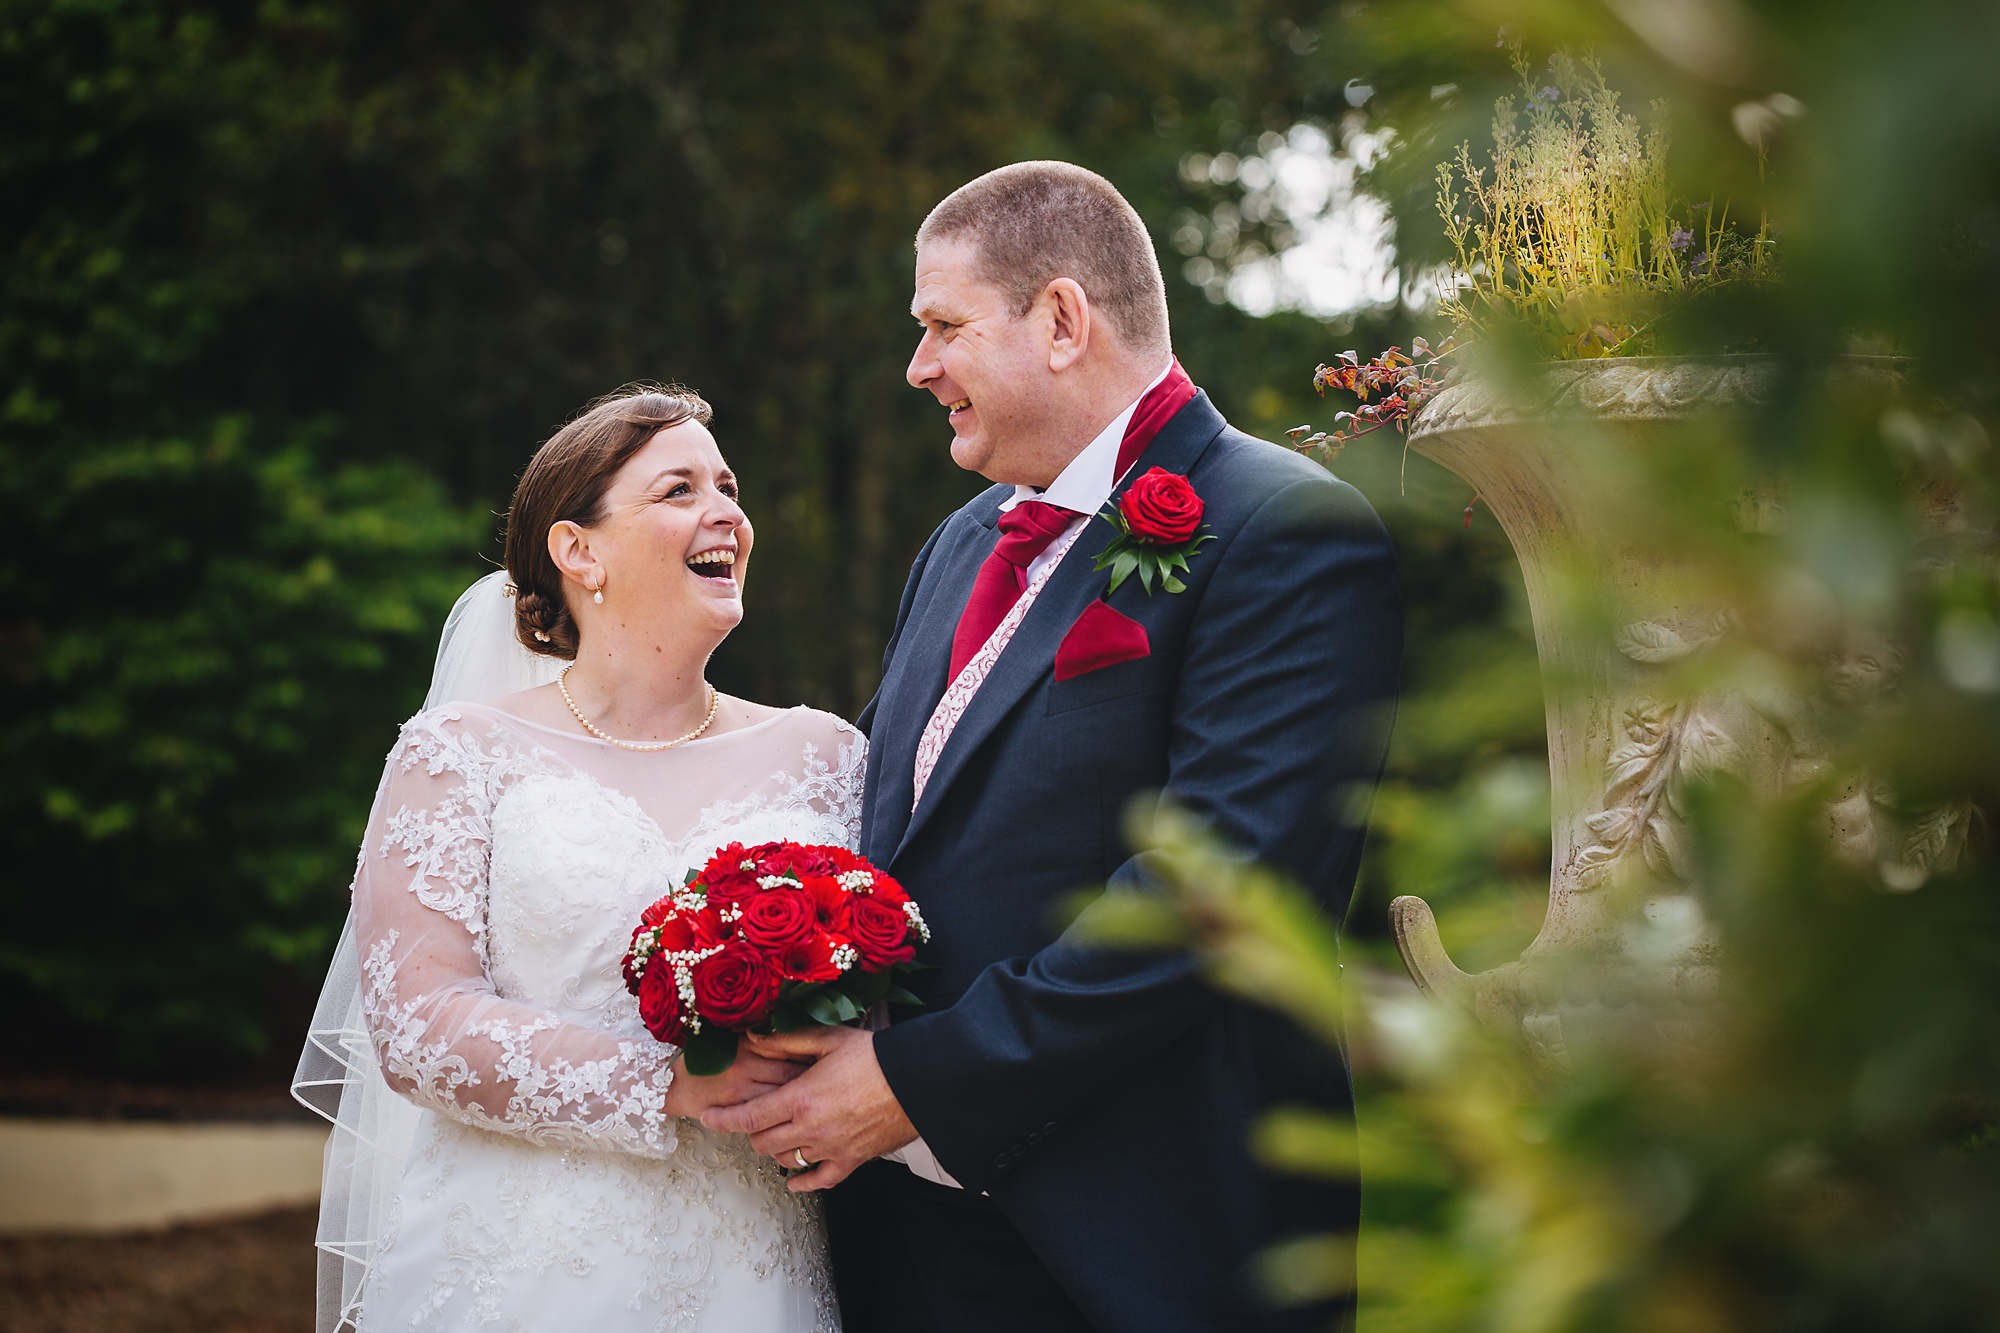 Wedding photos at the Vale Resort, Vale of Glamorgan, Cardiff. Wedding photographer